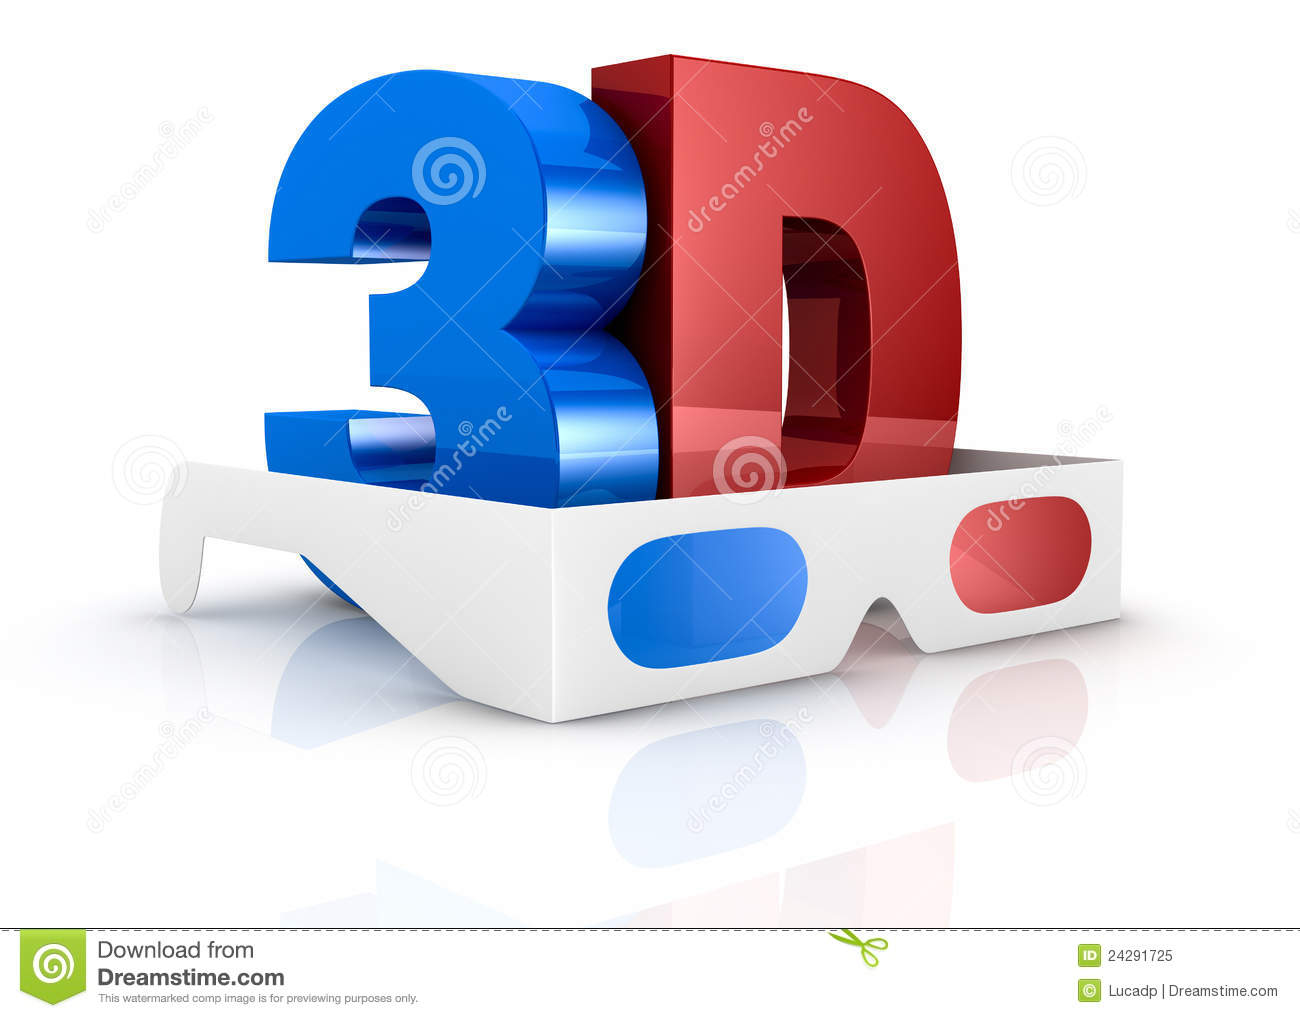 how to download 3d movies in mobile